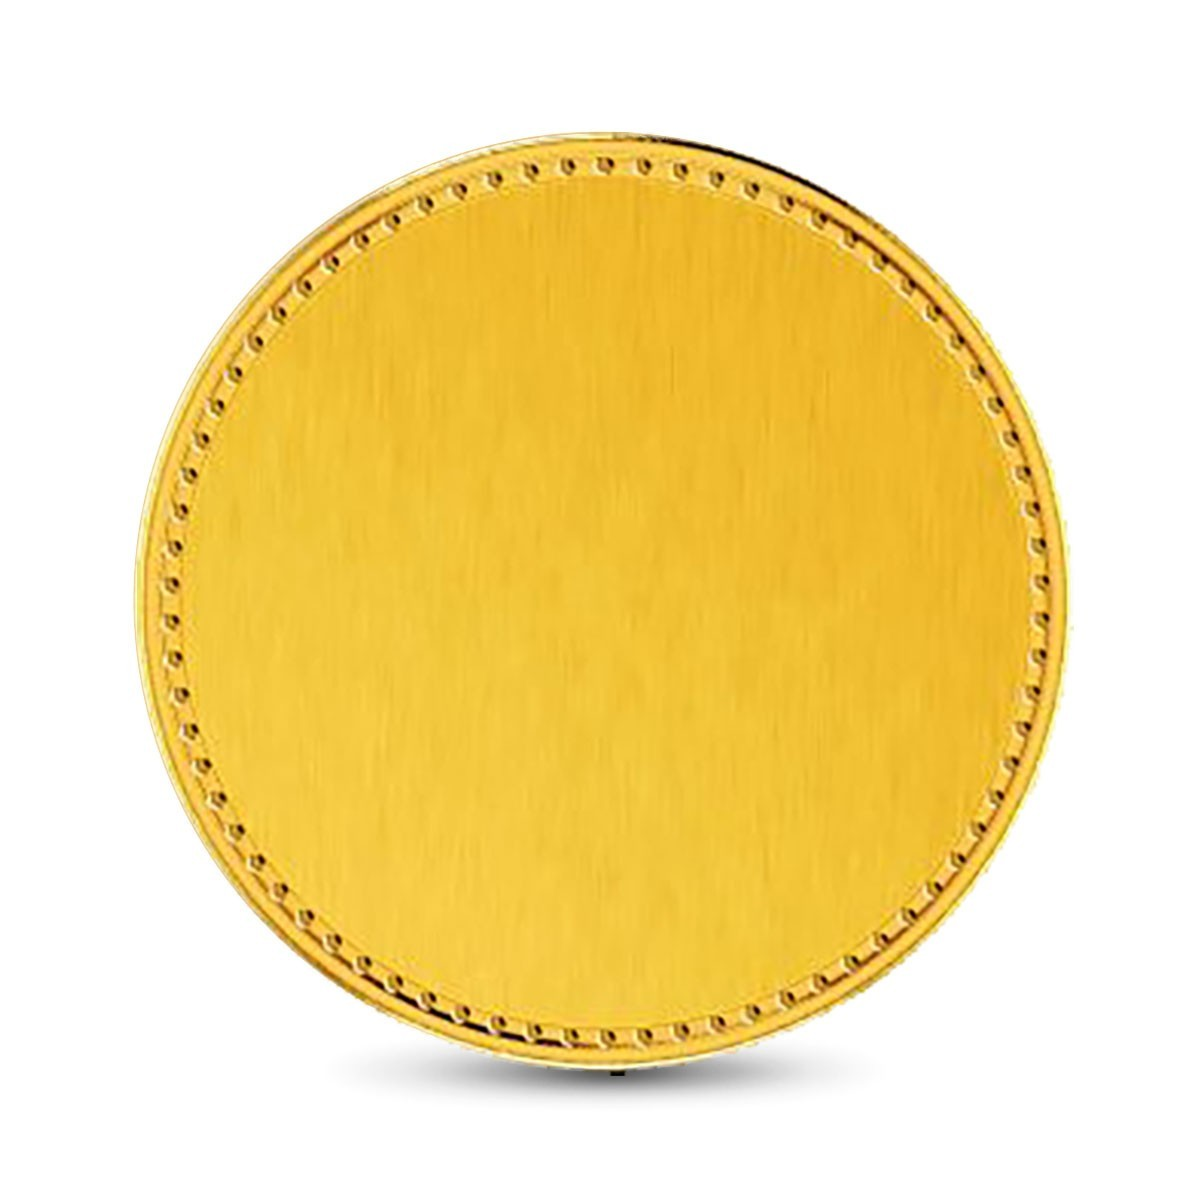 8 Gram 22Kt Hallmarked Plain Gold Coin